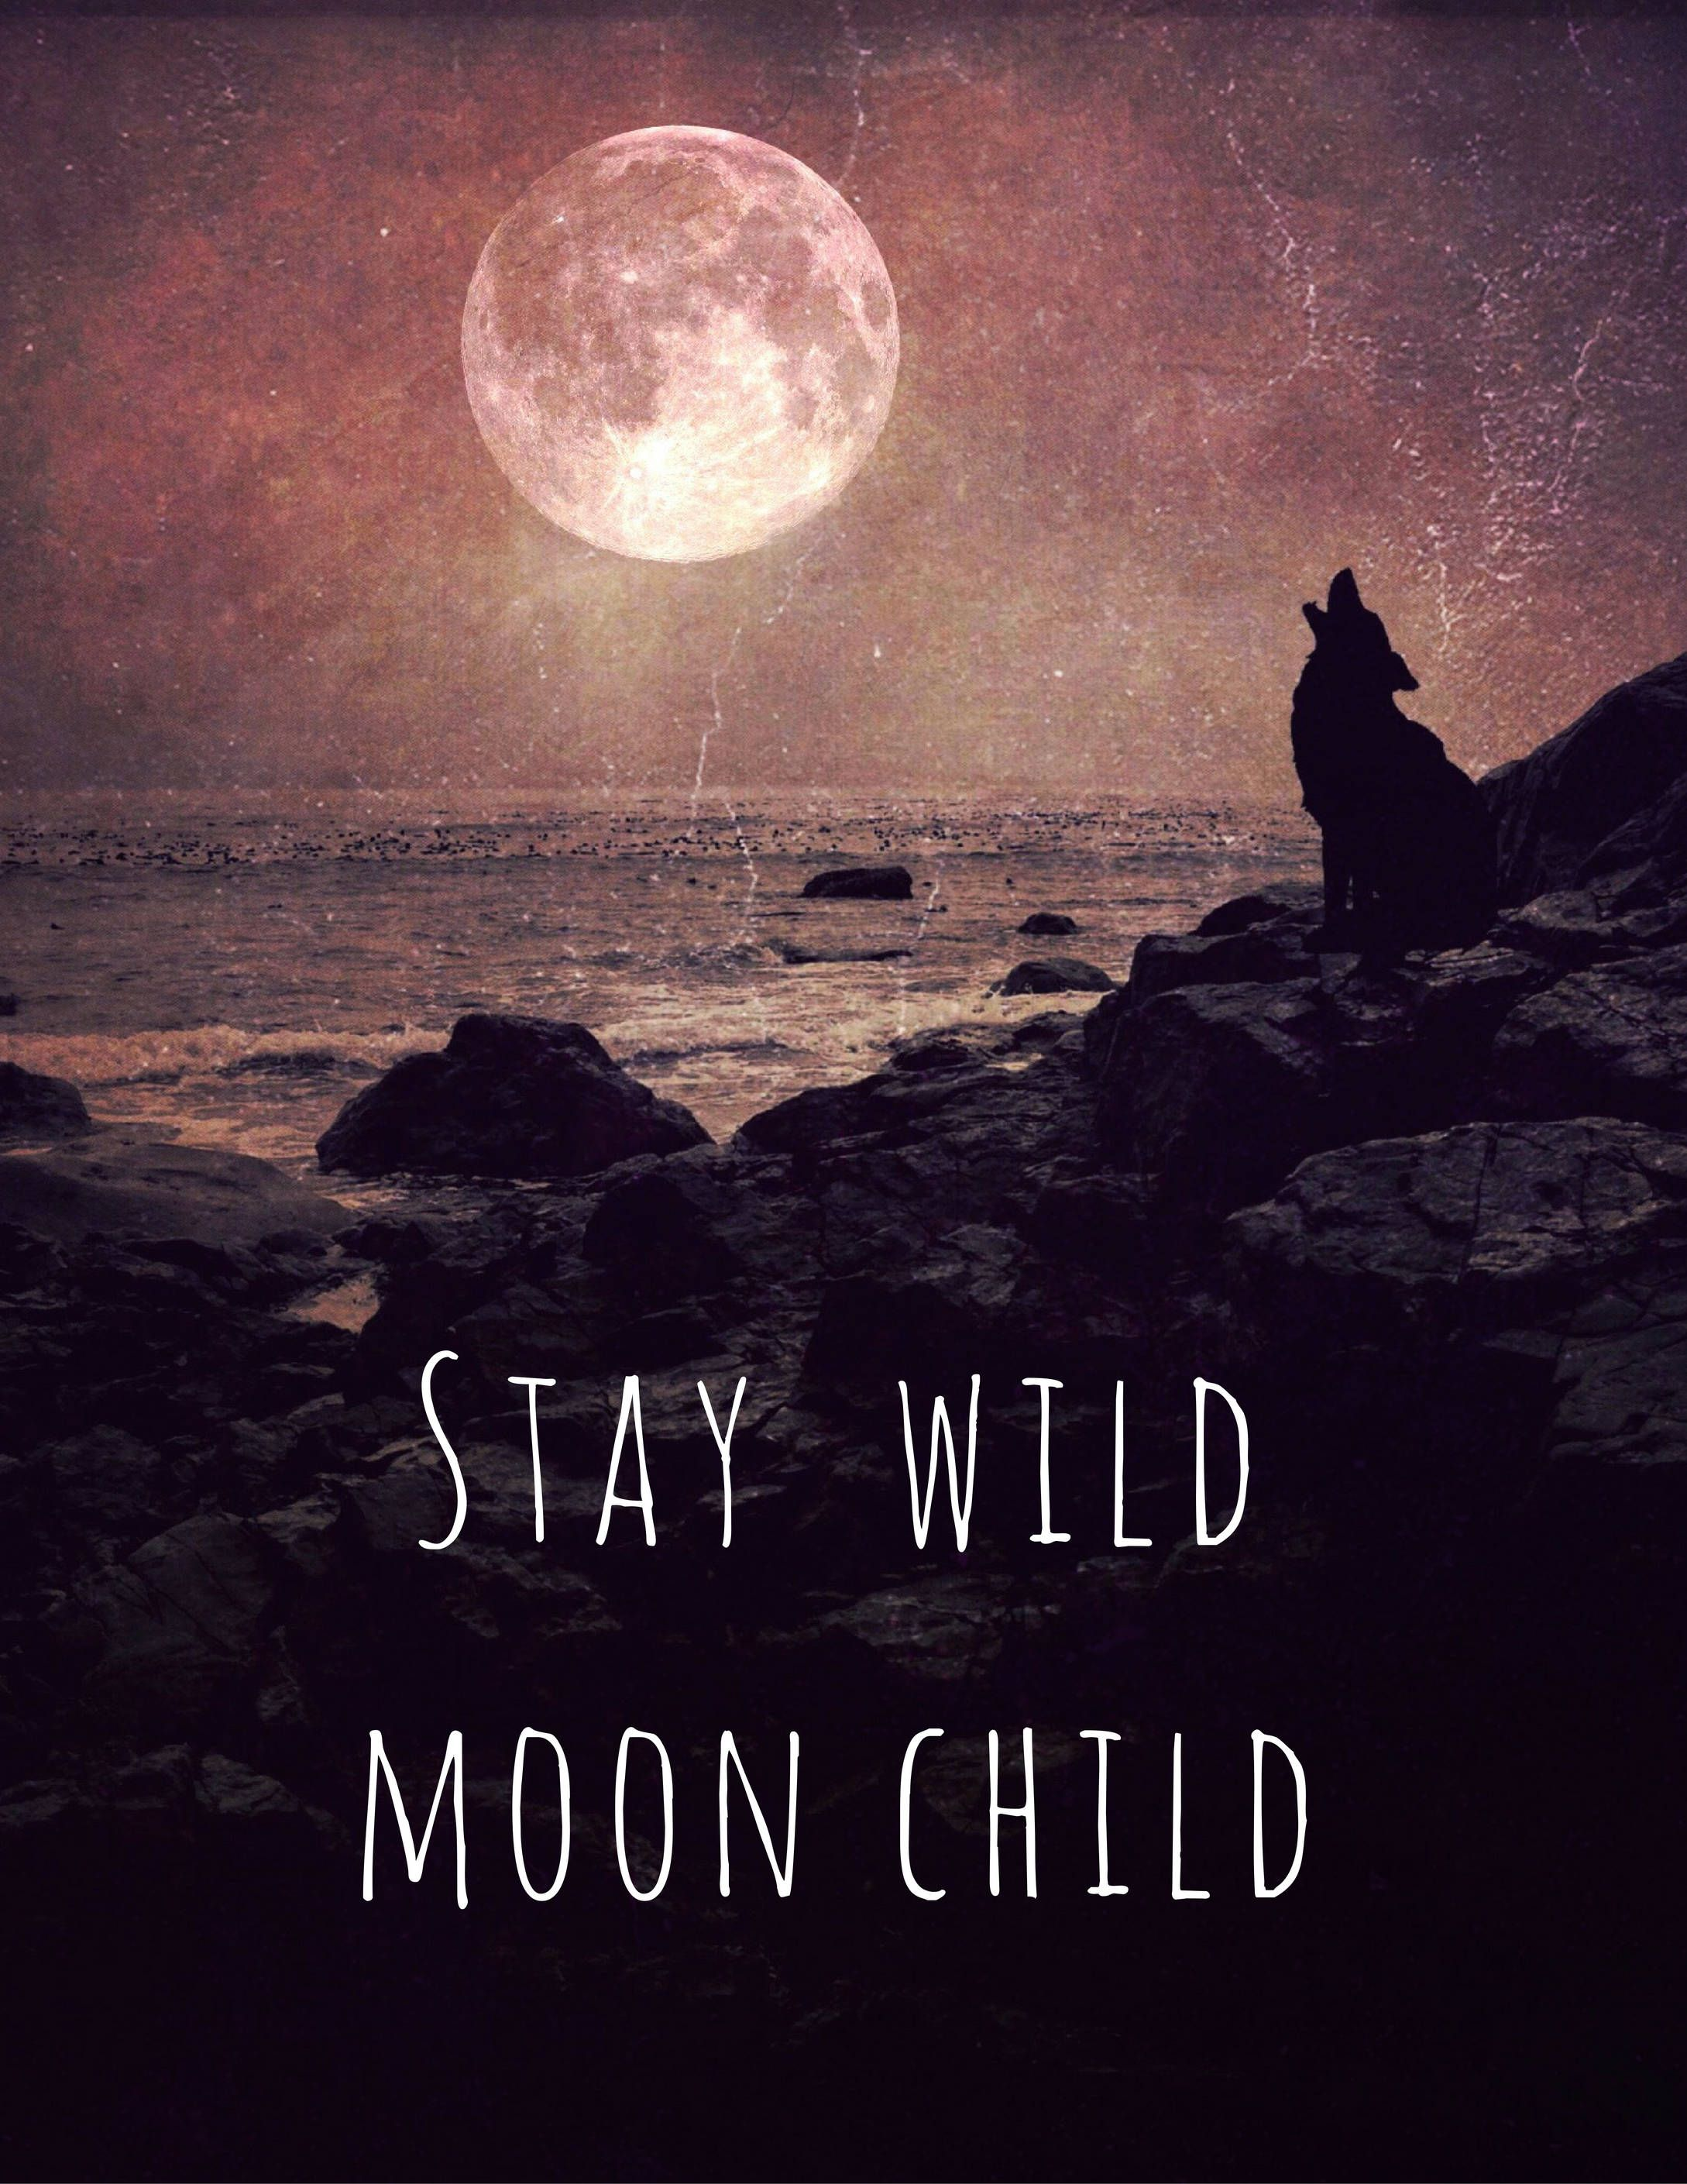 Stay Wild Moon Child PRINT moon quote, fine art home